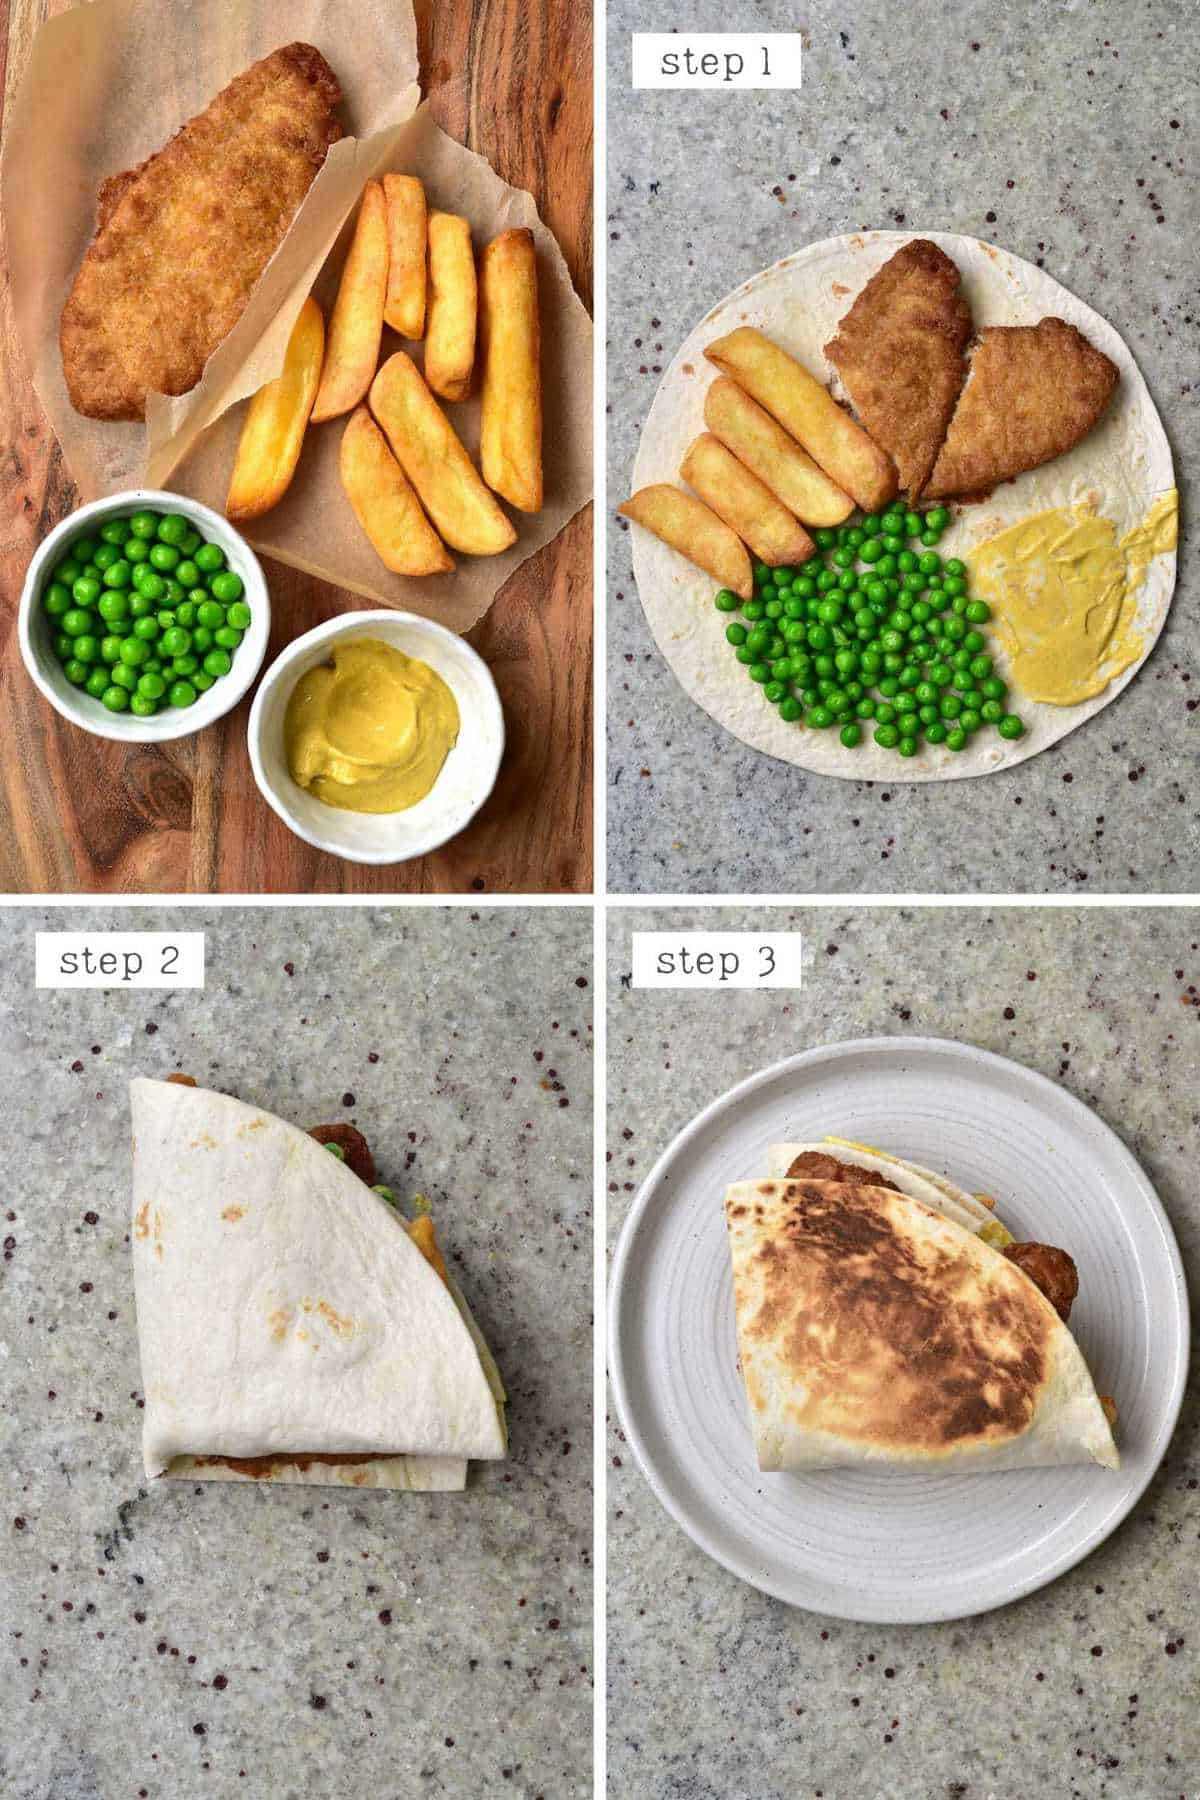 Steps for making fish and chips tortilla - English wrap